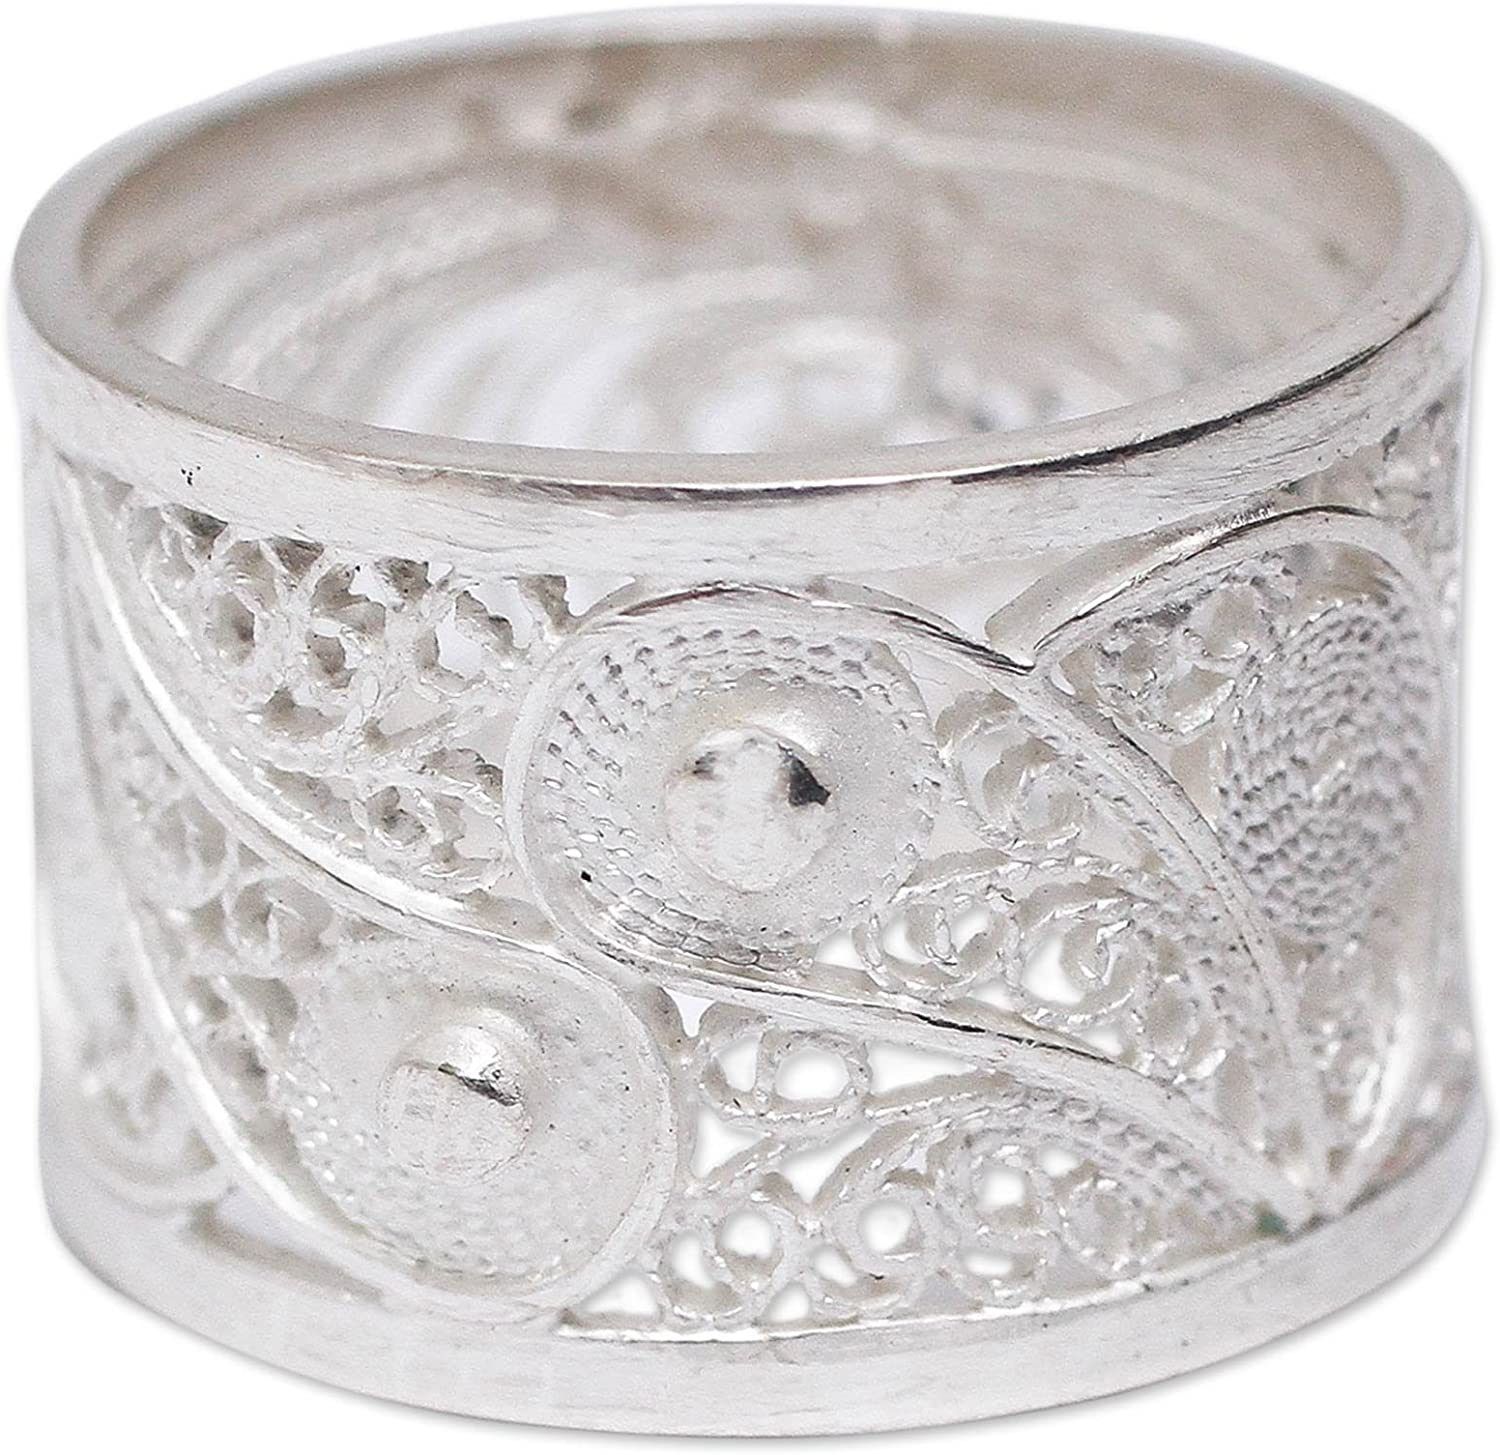 NOVICA overseas .925 It is very popular Sterling Silver Handcrafted Filigree Ring Yang Yin